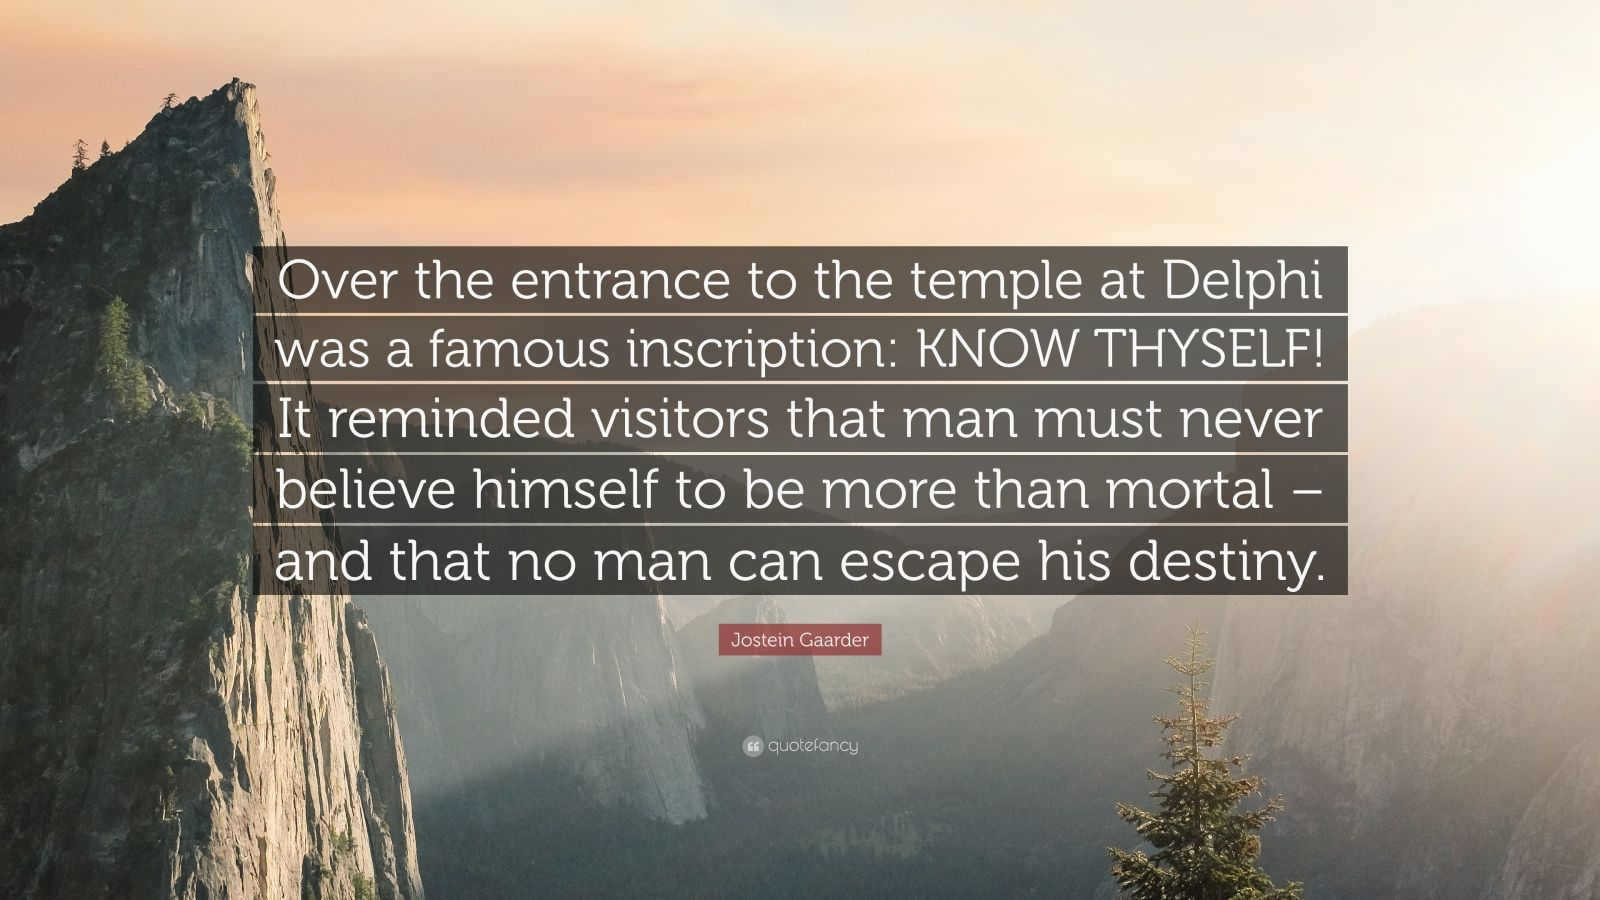 Steve Jobs Famous Quotes Wallpaper Jostein Gaarder Quote Over The Entrance To The Temple At